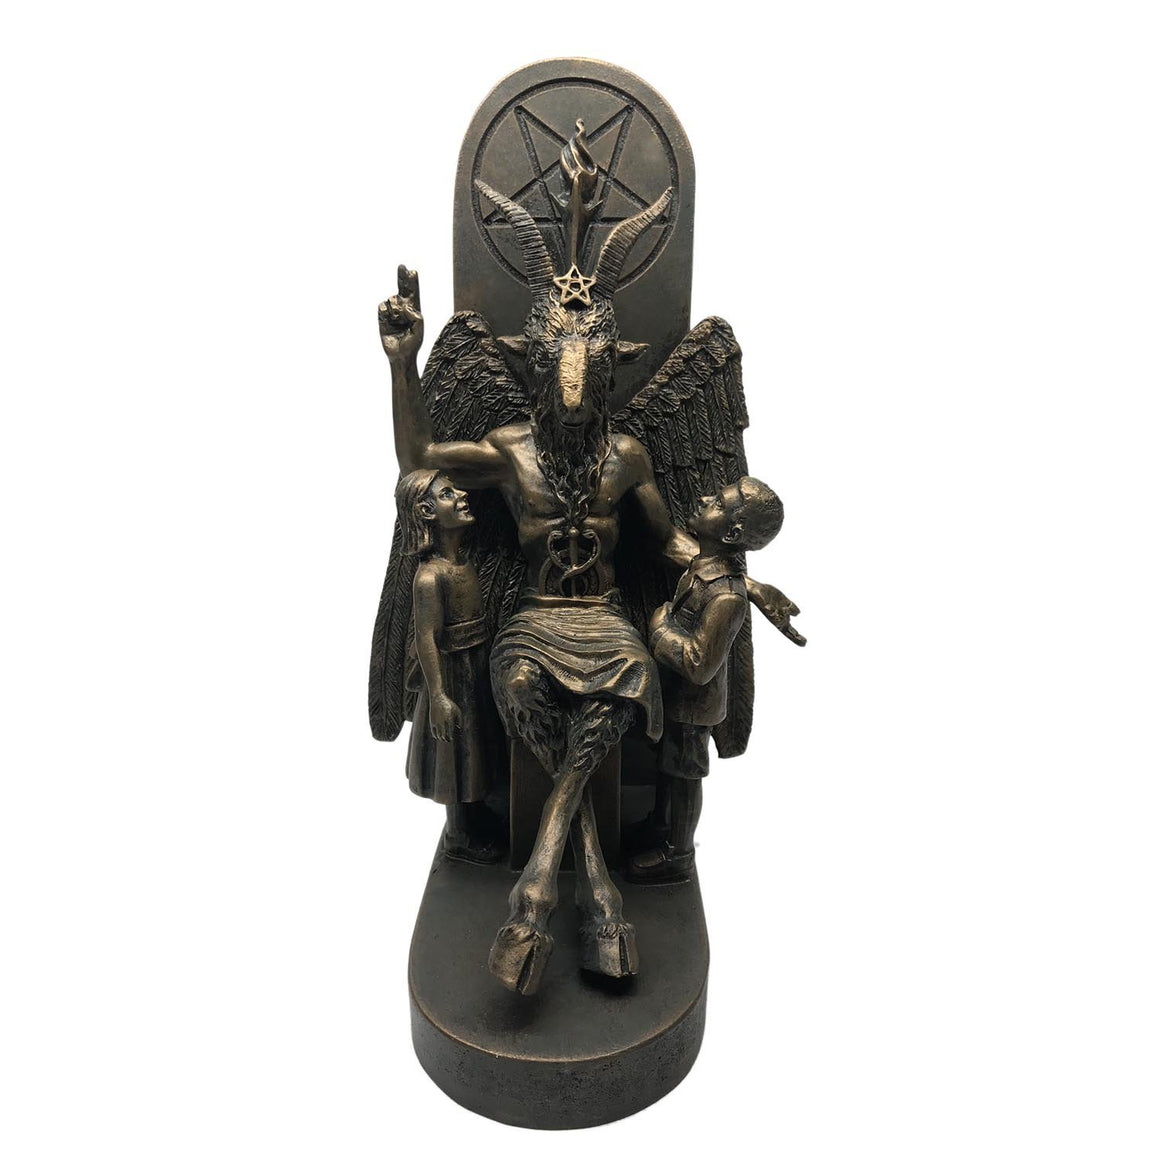 Baphomet Statue by Dellamorte & Co.